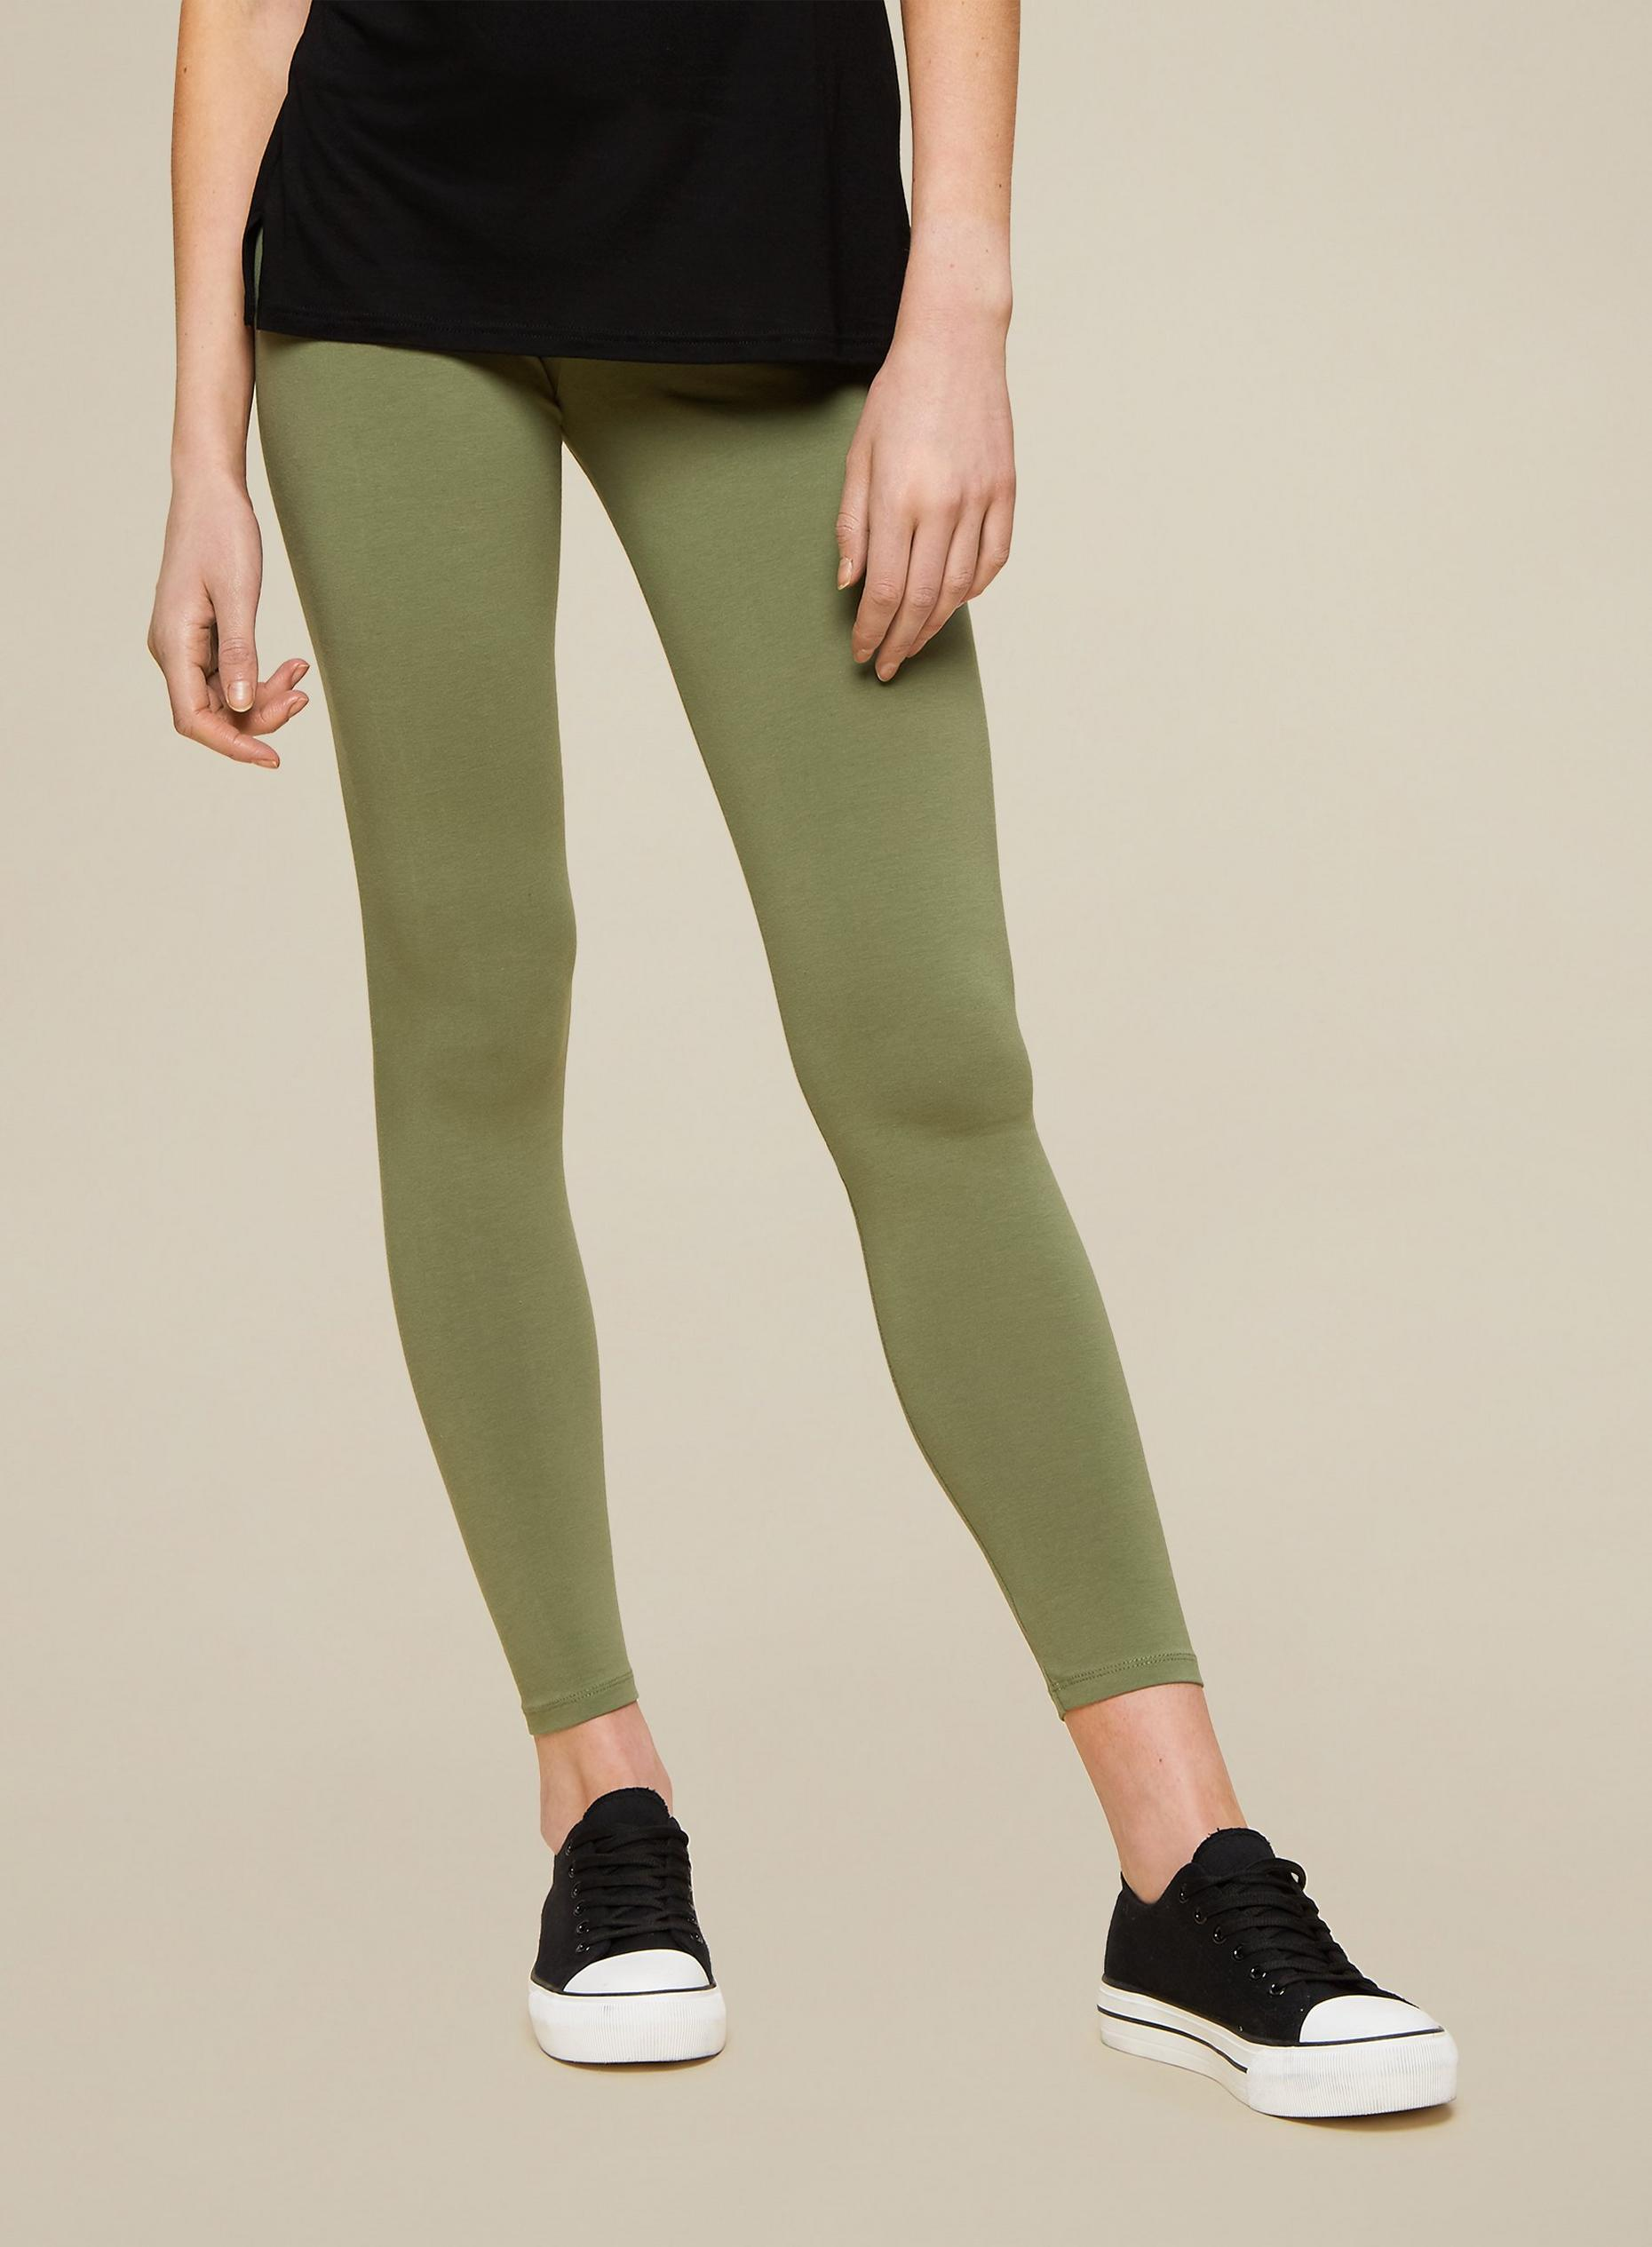 Khaki Basic Leggings